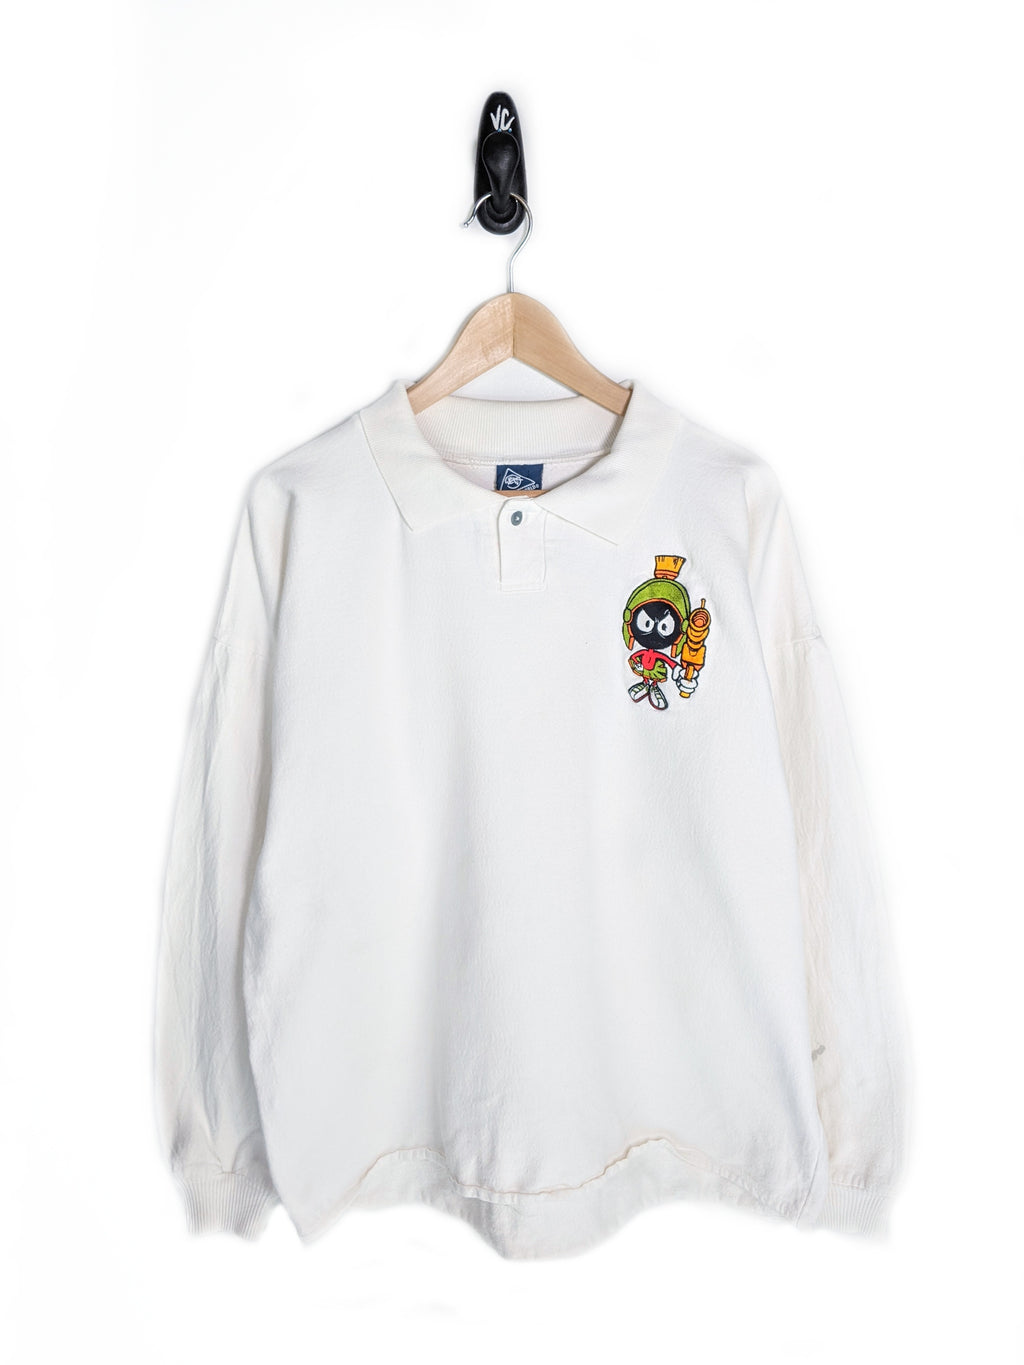 Marvin the Martian Sweatshirt (XL)